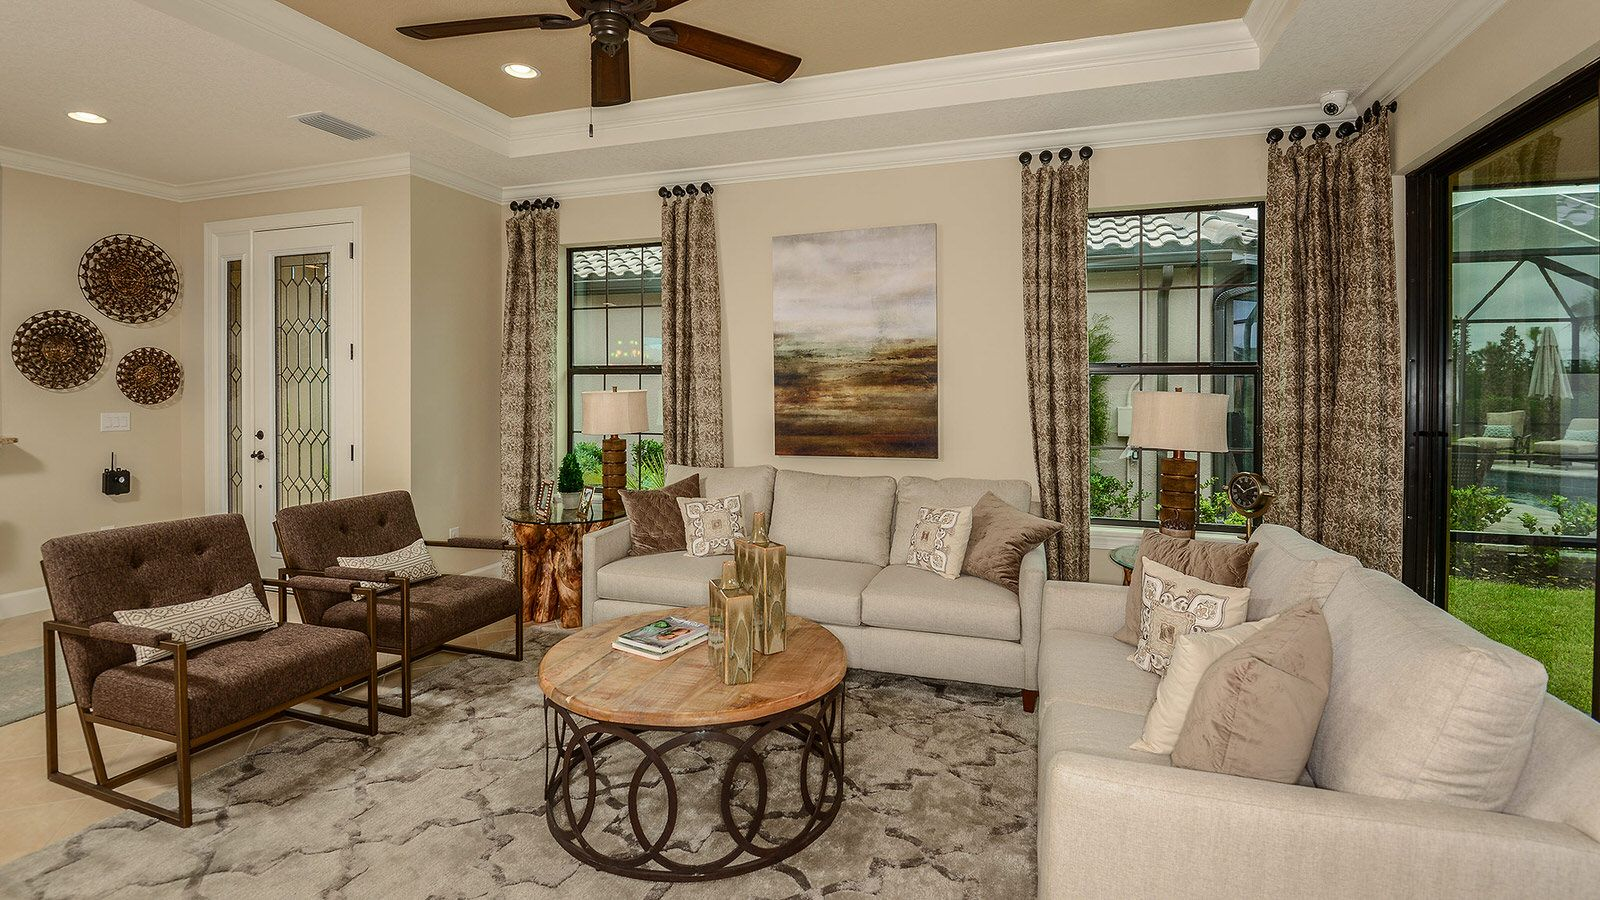 Living Area featured in the Arezzo Plan By Taylor Morrison in Tampa-St. Petersburg, FL